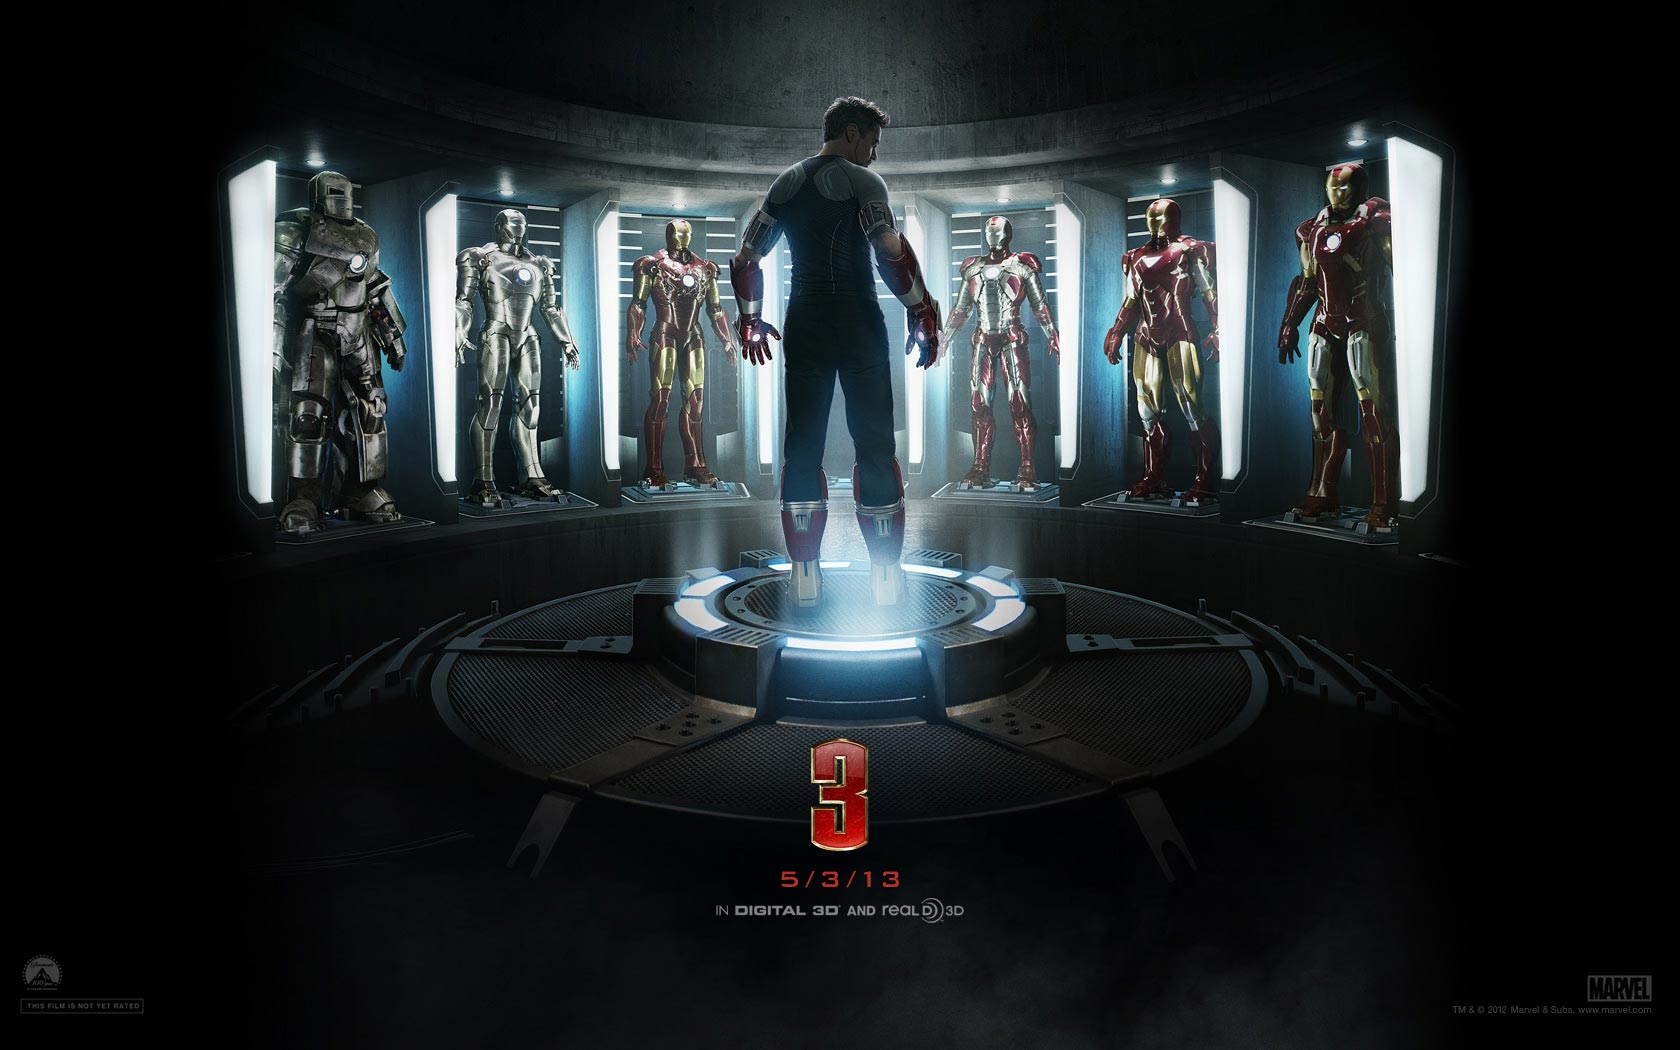 iron man 3 images iron man 3 wallpaper hd wallpaper and background